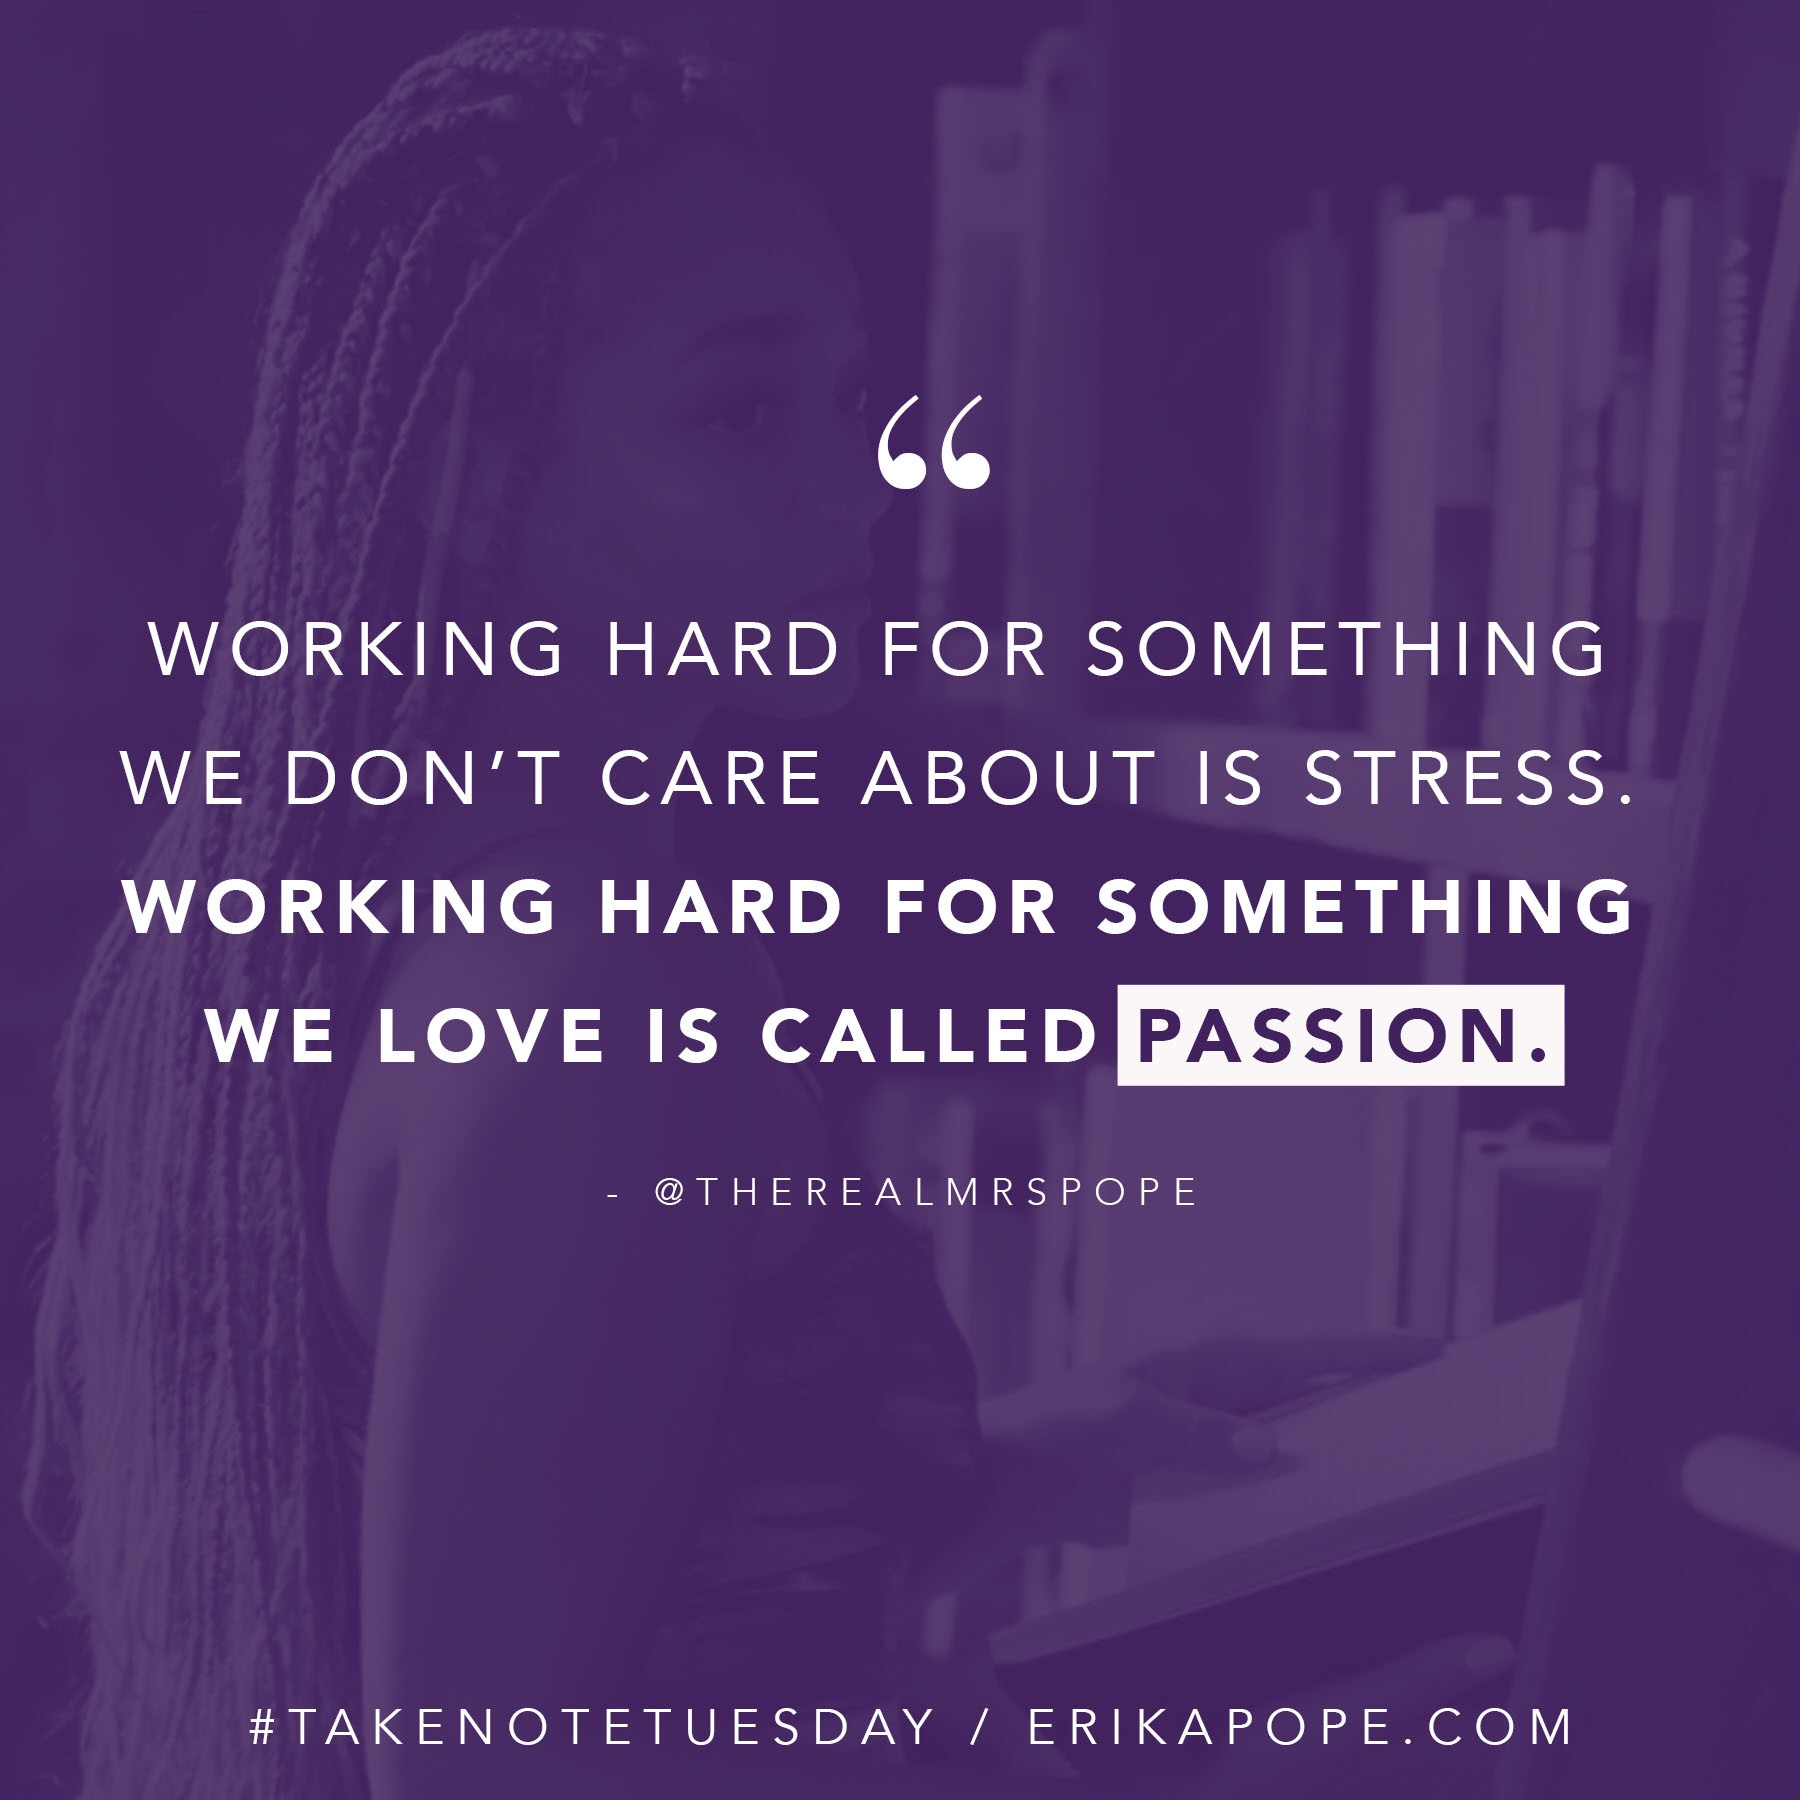 RELOADED: find your passion